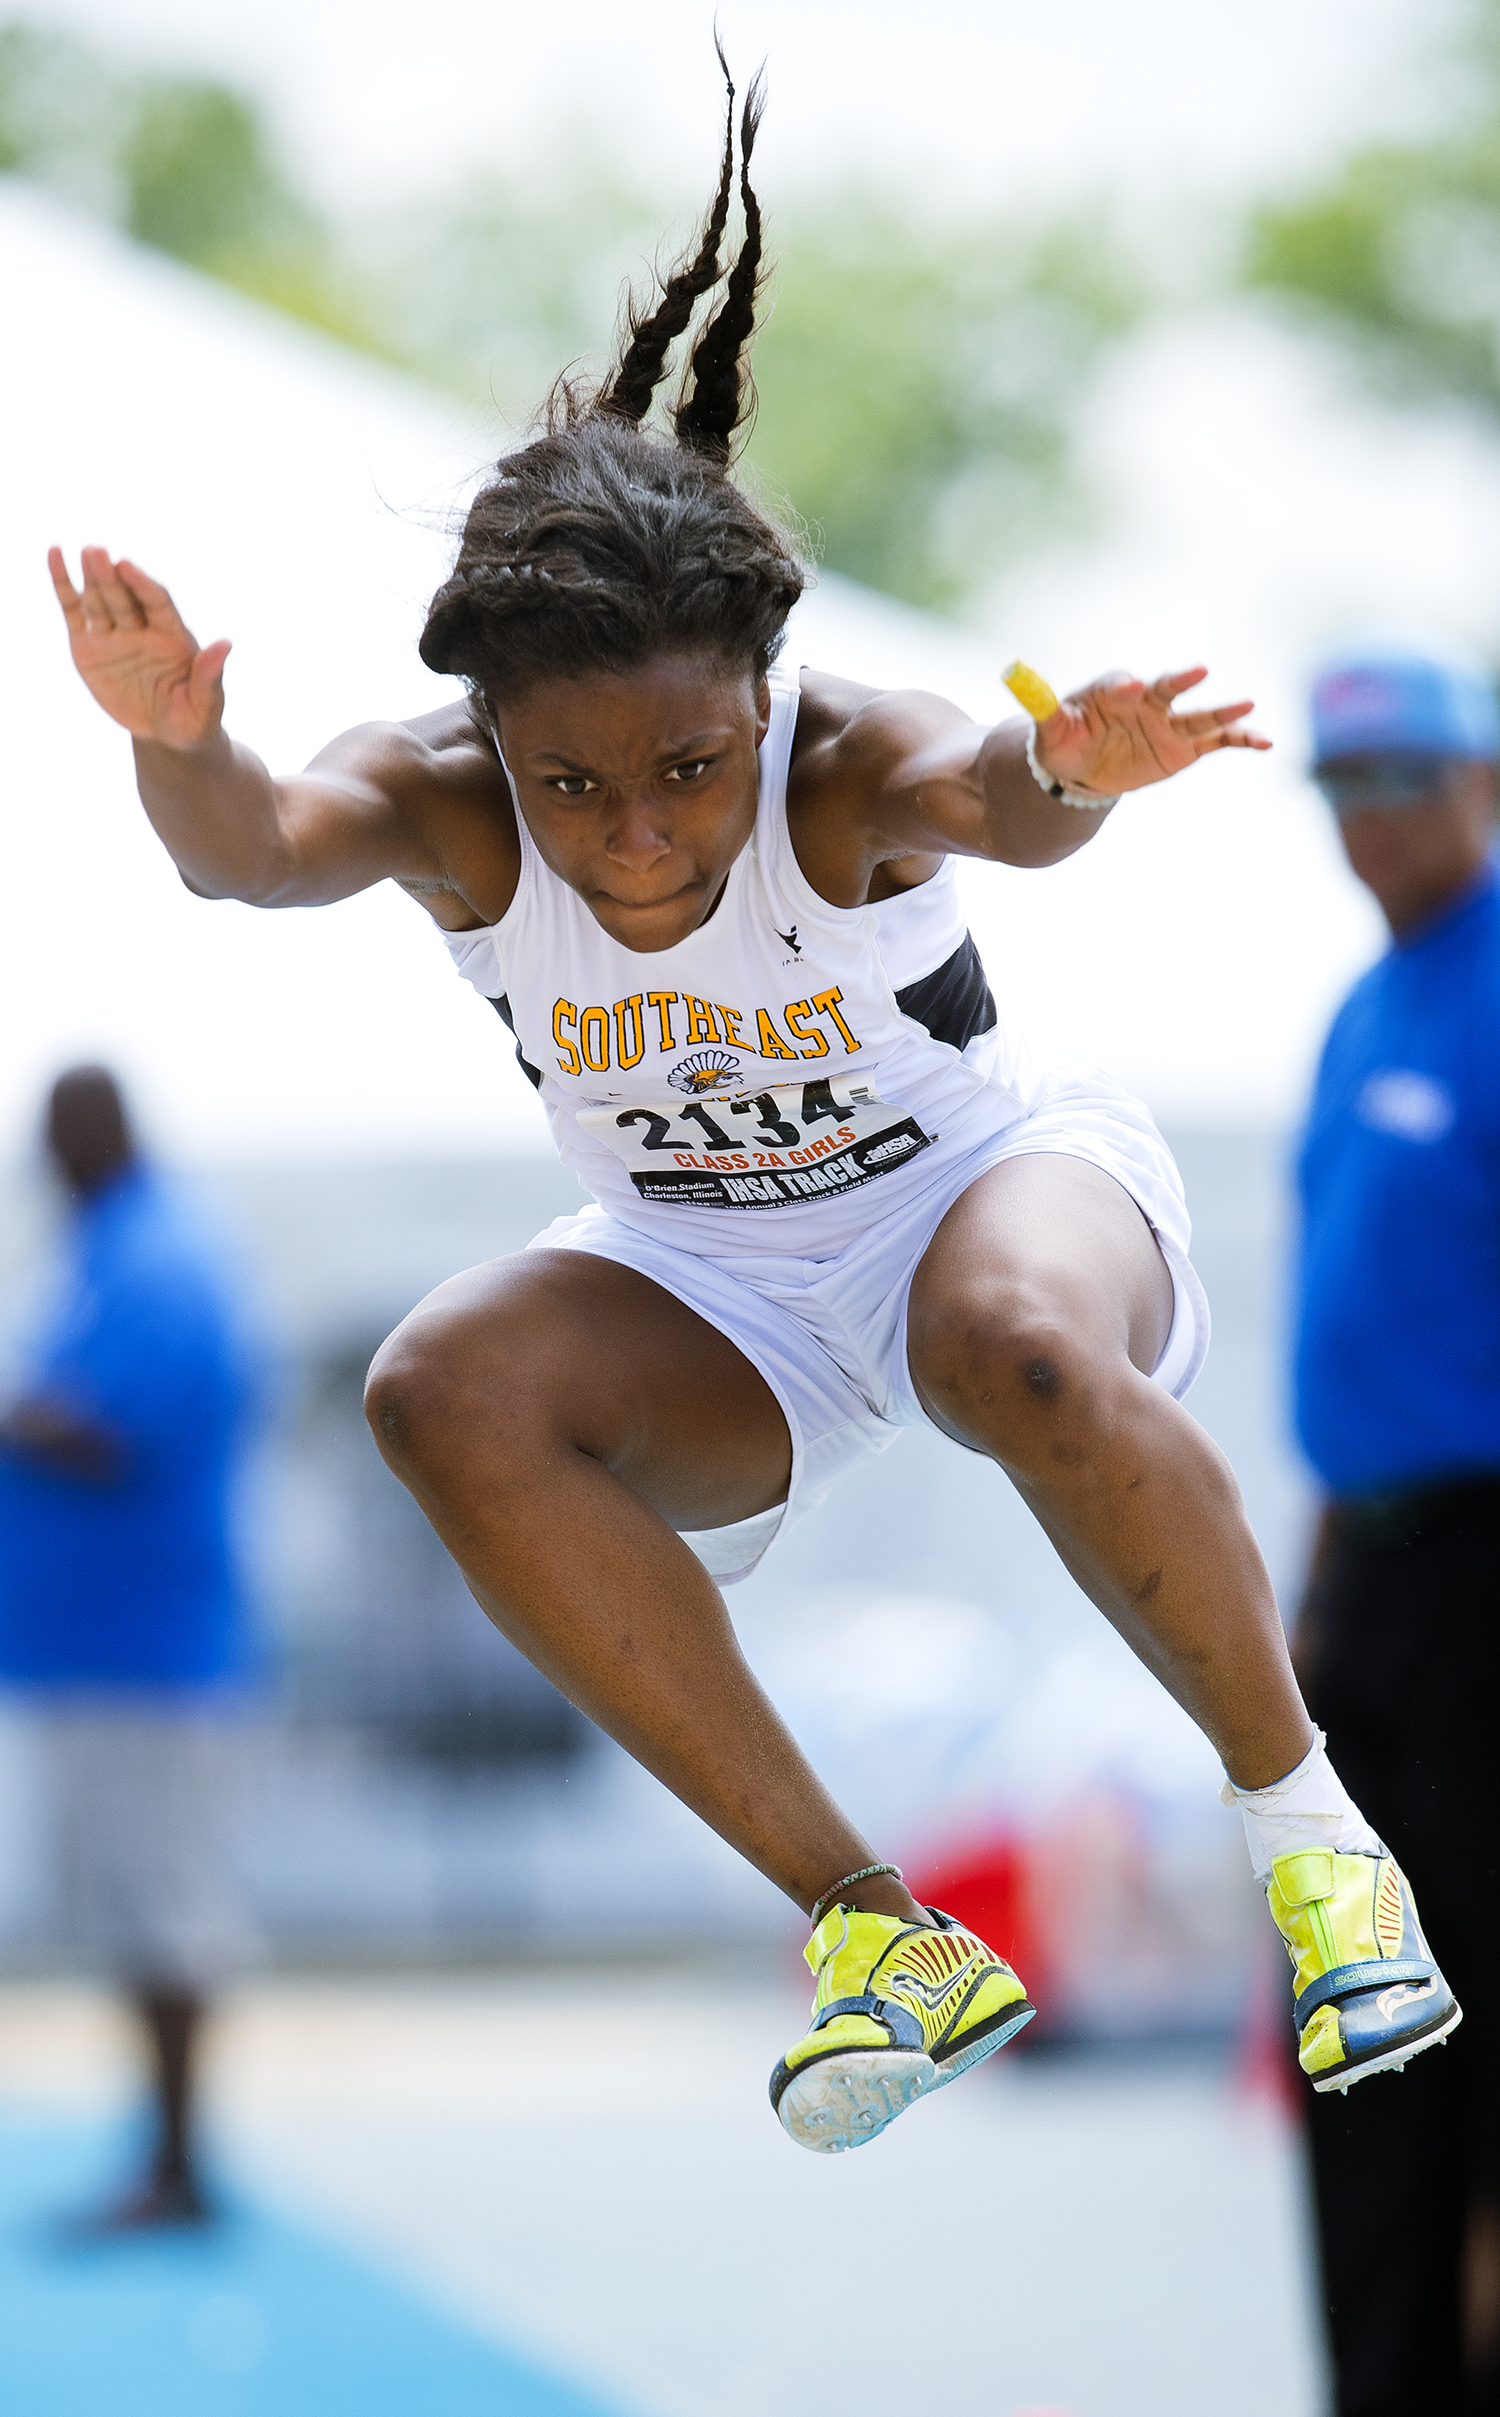 Southeast's  Serena Bolden competes in the Class 2A triple jump during thei IHSA Track and Field State Finals at O'Brien Field in Charleston, Ill., Saturday, May 19, 2018. Bolden finished fourth in the event.  [Ted Schurter/The State Journal-Register]